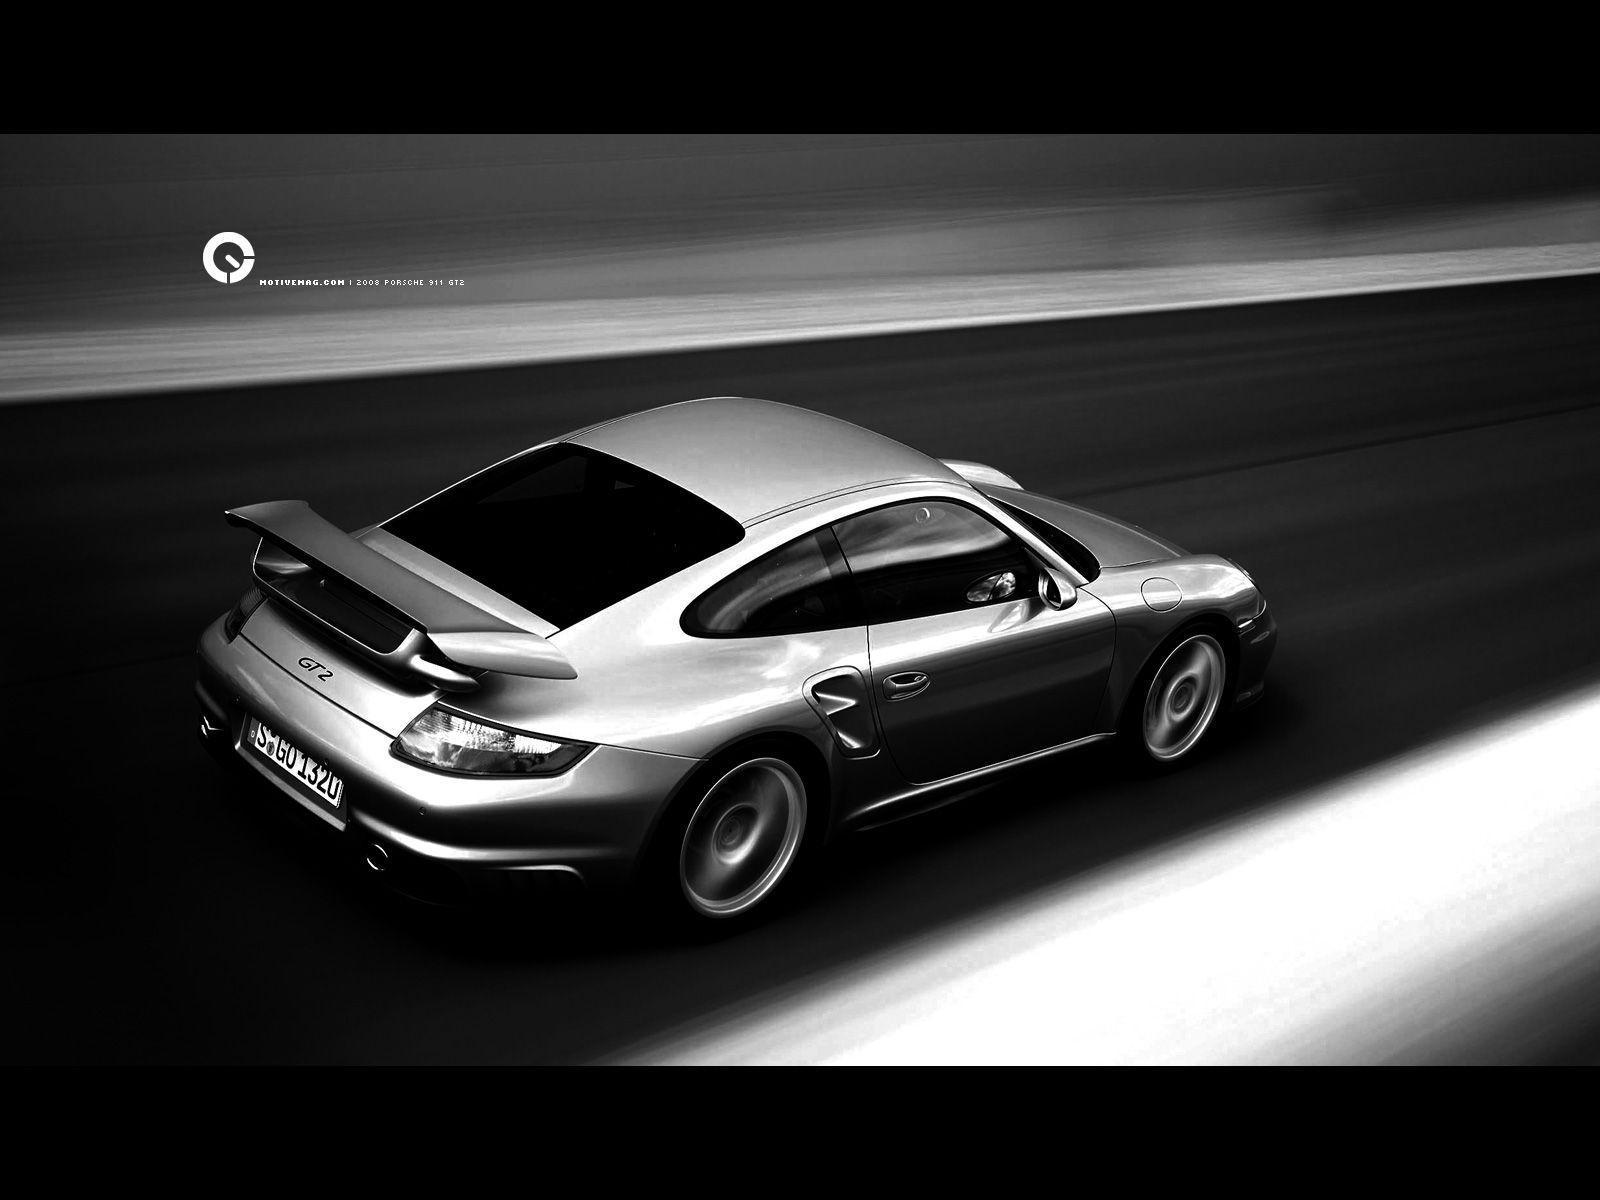 Top 120 Porsche Wallpapers | REALITYPOD